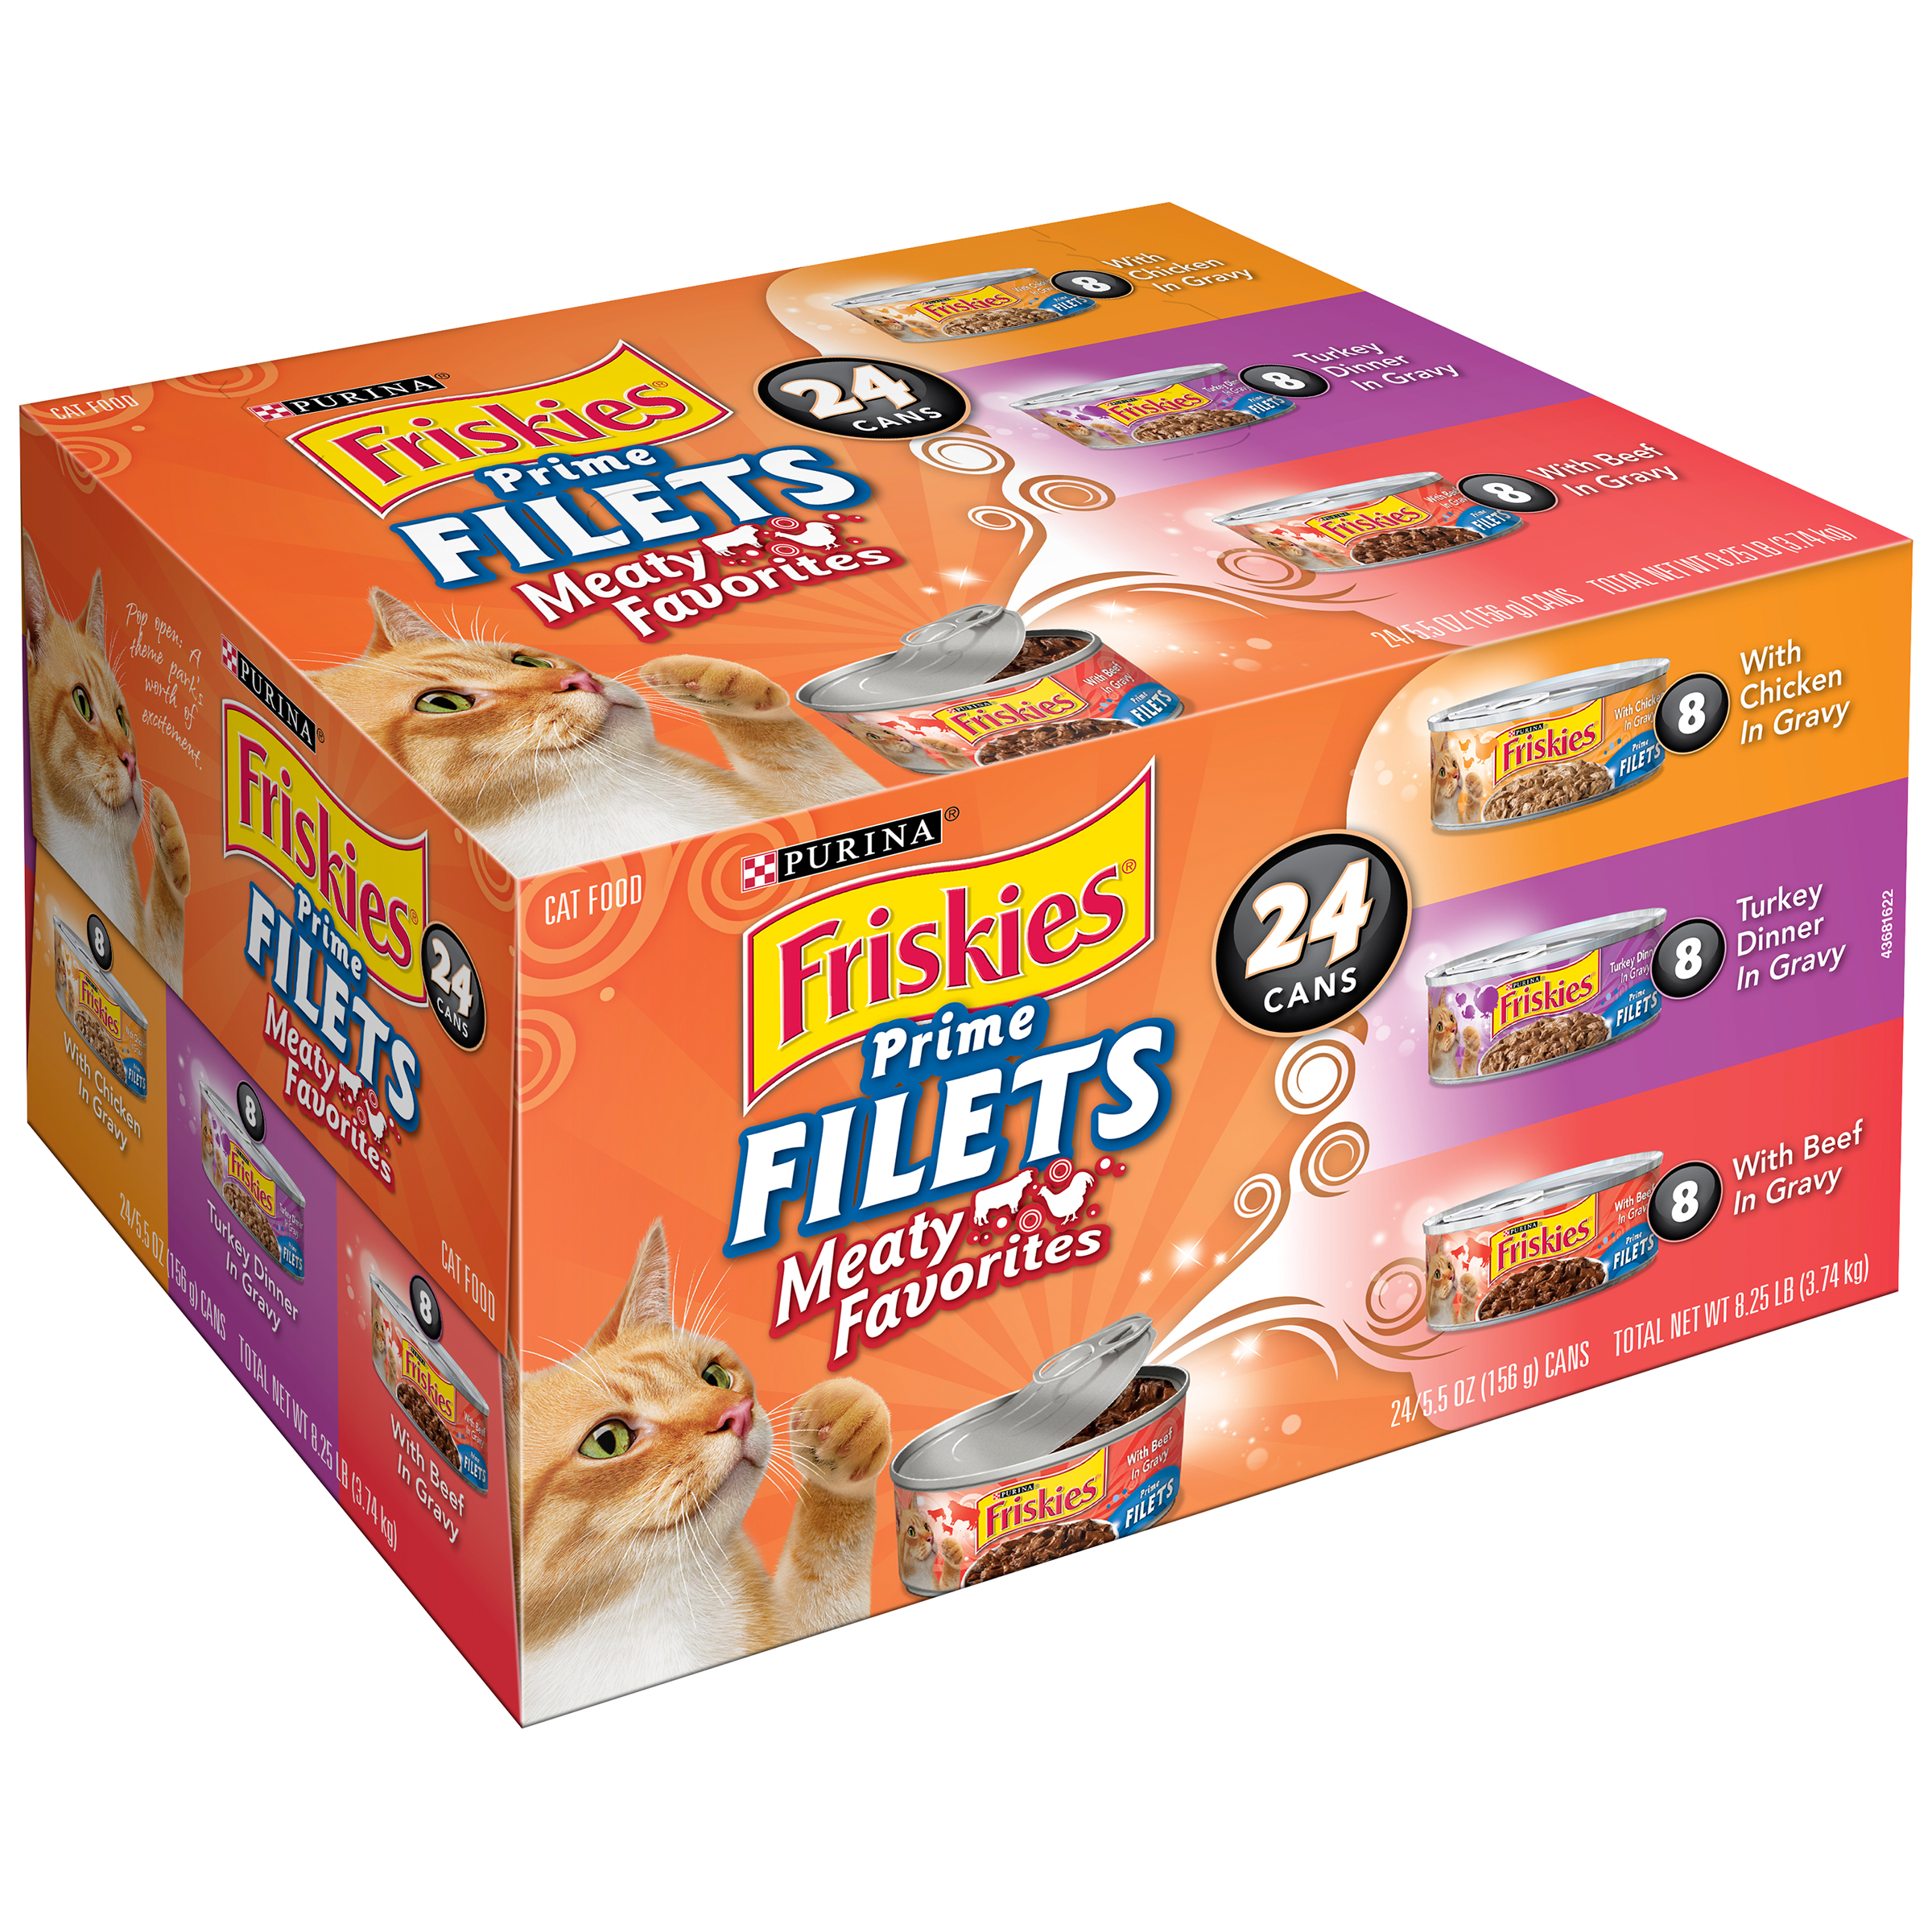 Purina Friskies Prime Filets Meaty Favorites Cat Food Variety Pack 24-5.5 oz. Cans